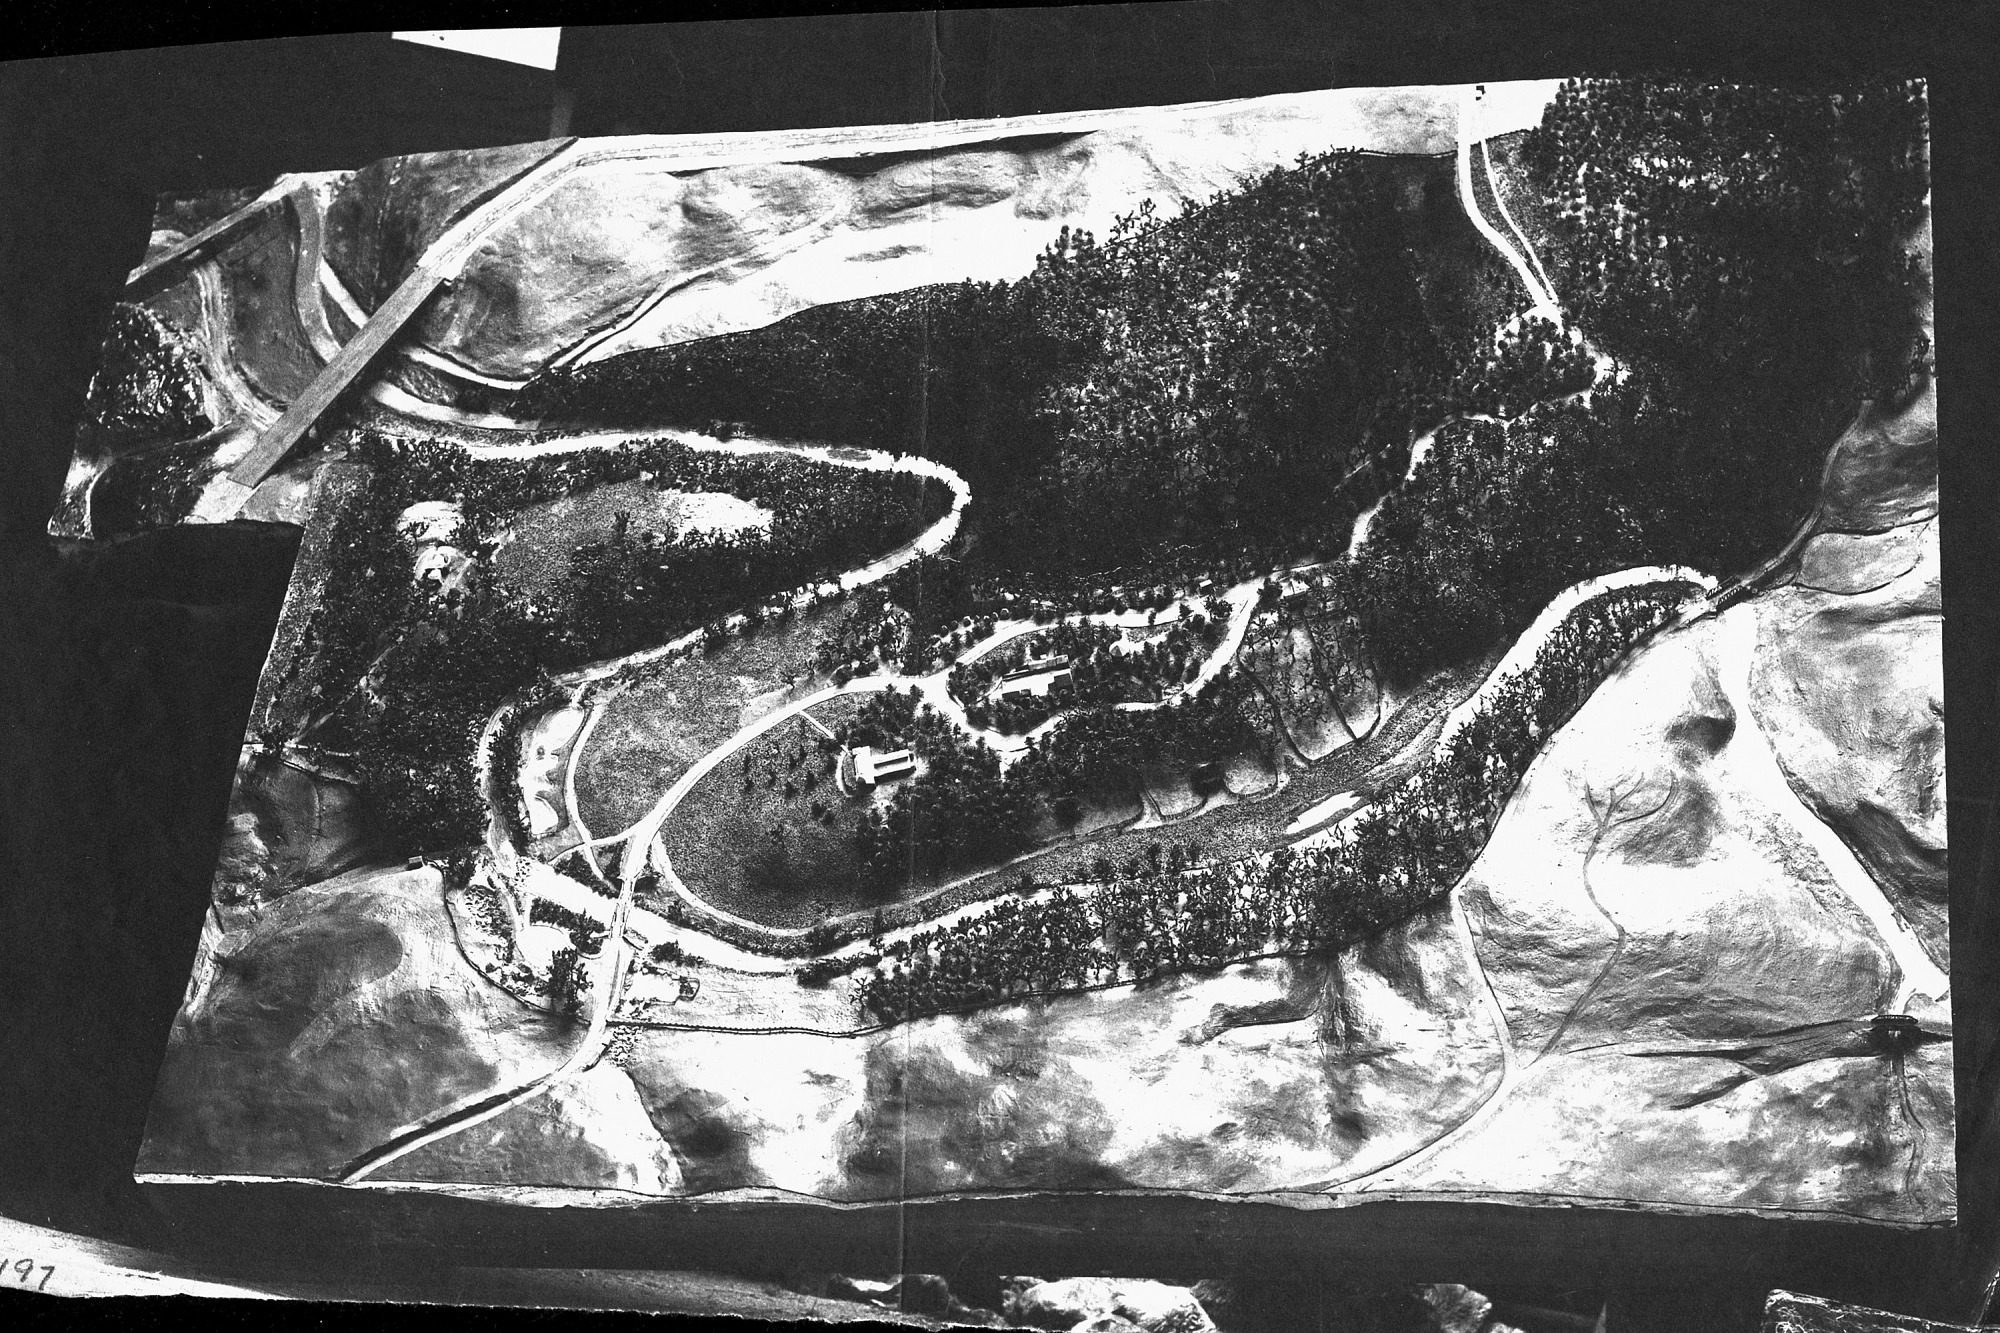 Model of the National Zoo, by Unknown, c. 1888, Smithsonian Archives - History Div, 2002-10703.